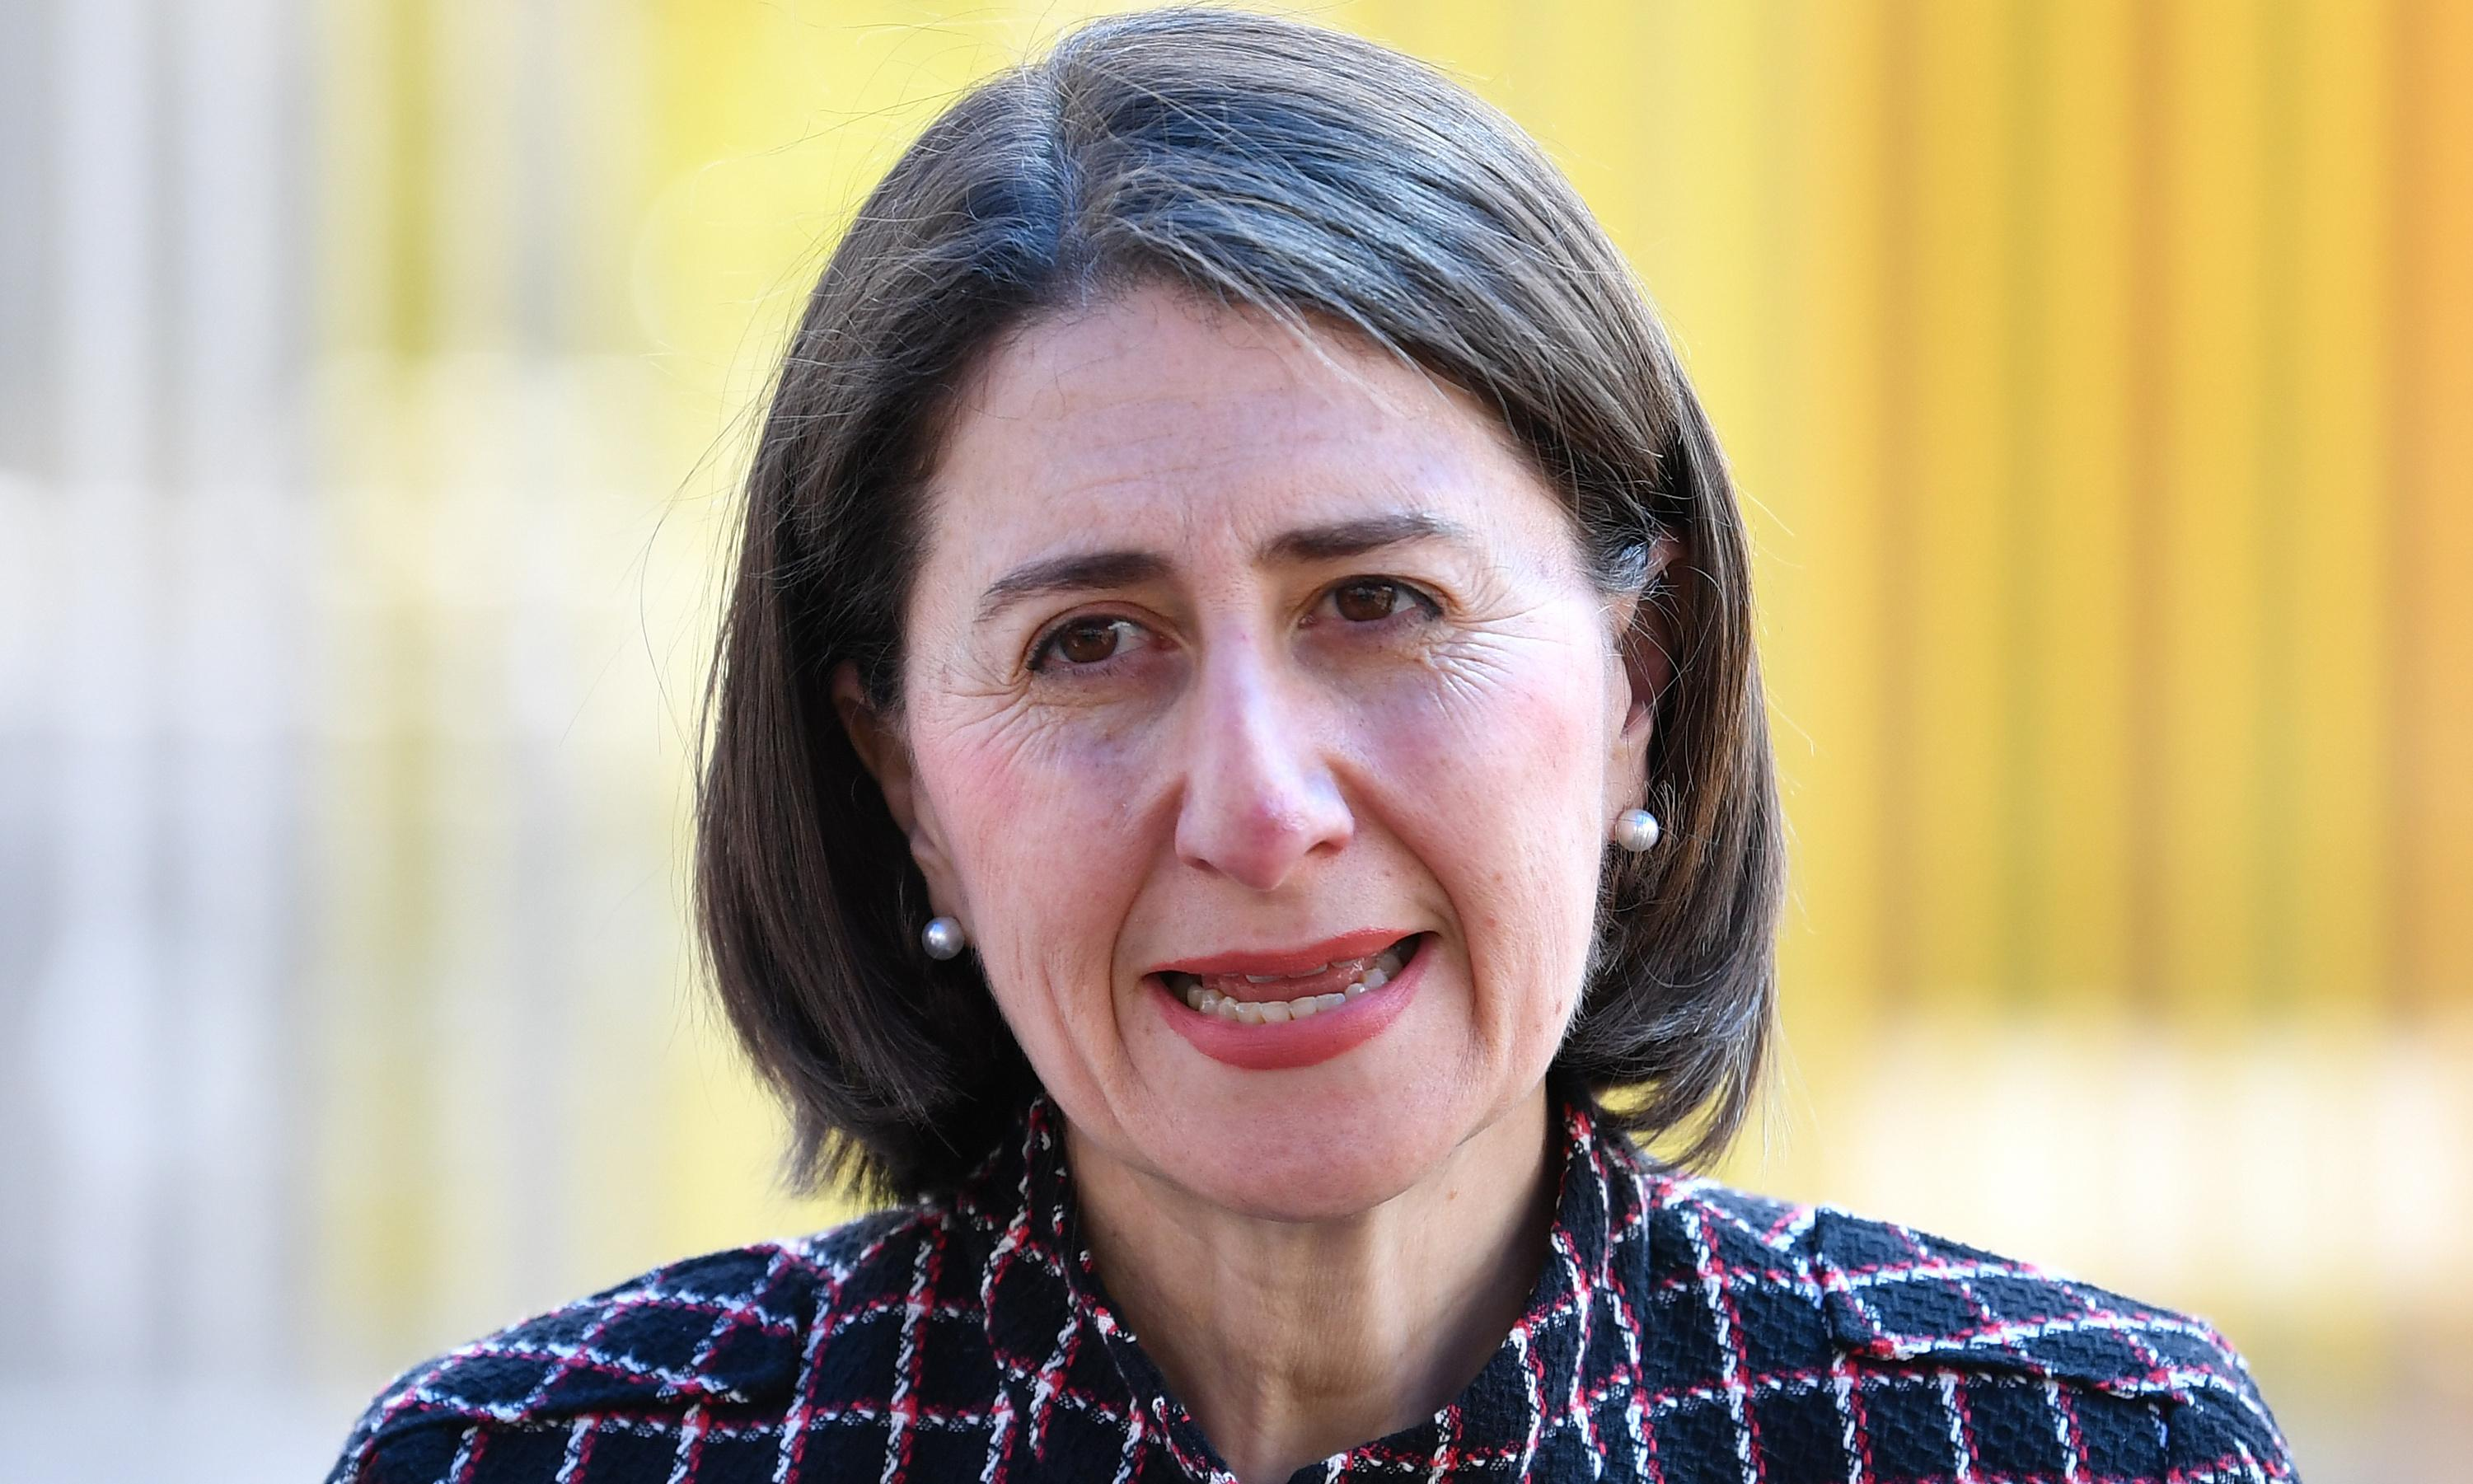 NSW premier dismisses coroner's call for pill testing before report is publicly released